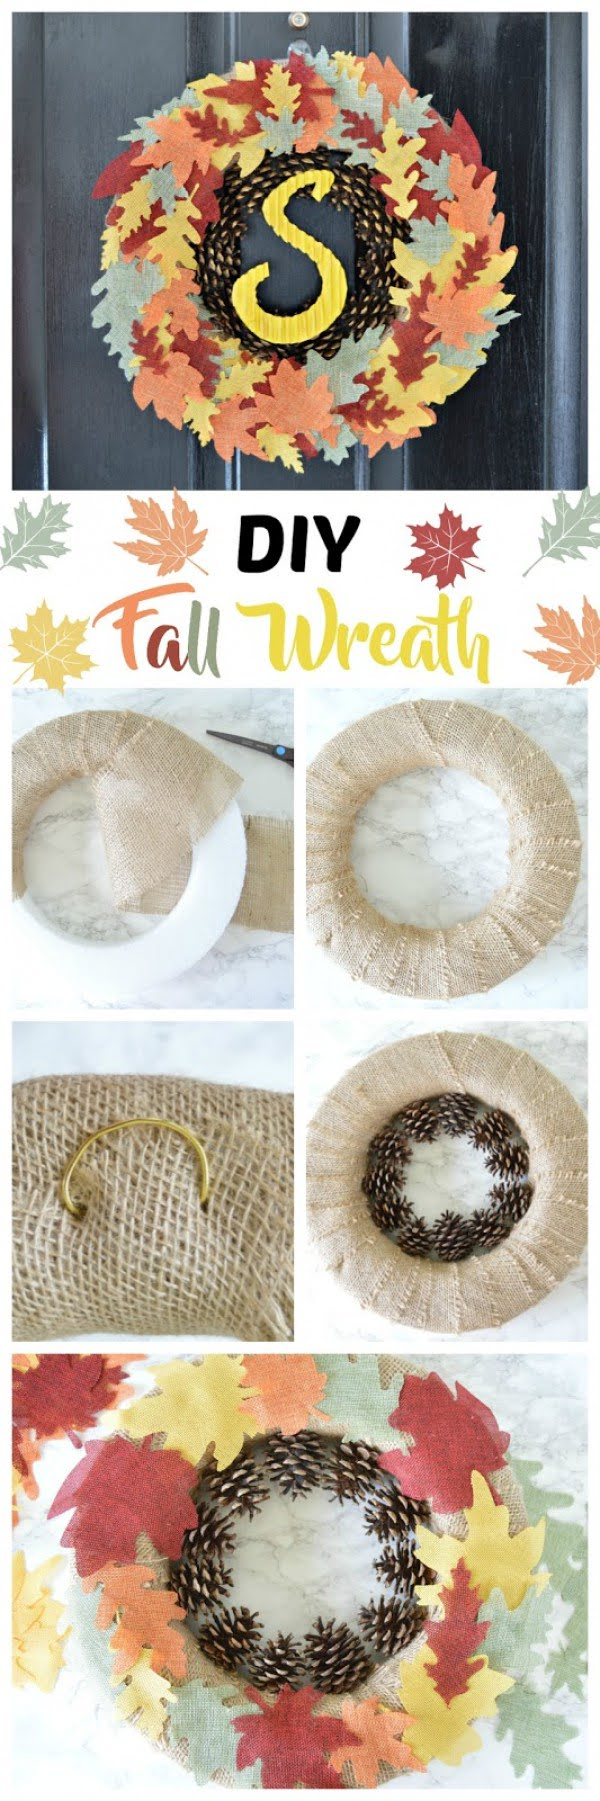 Check out the tutorial on how to make a DIY burlap and pinecone fall wreath